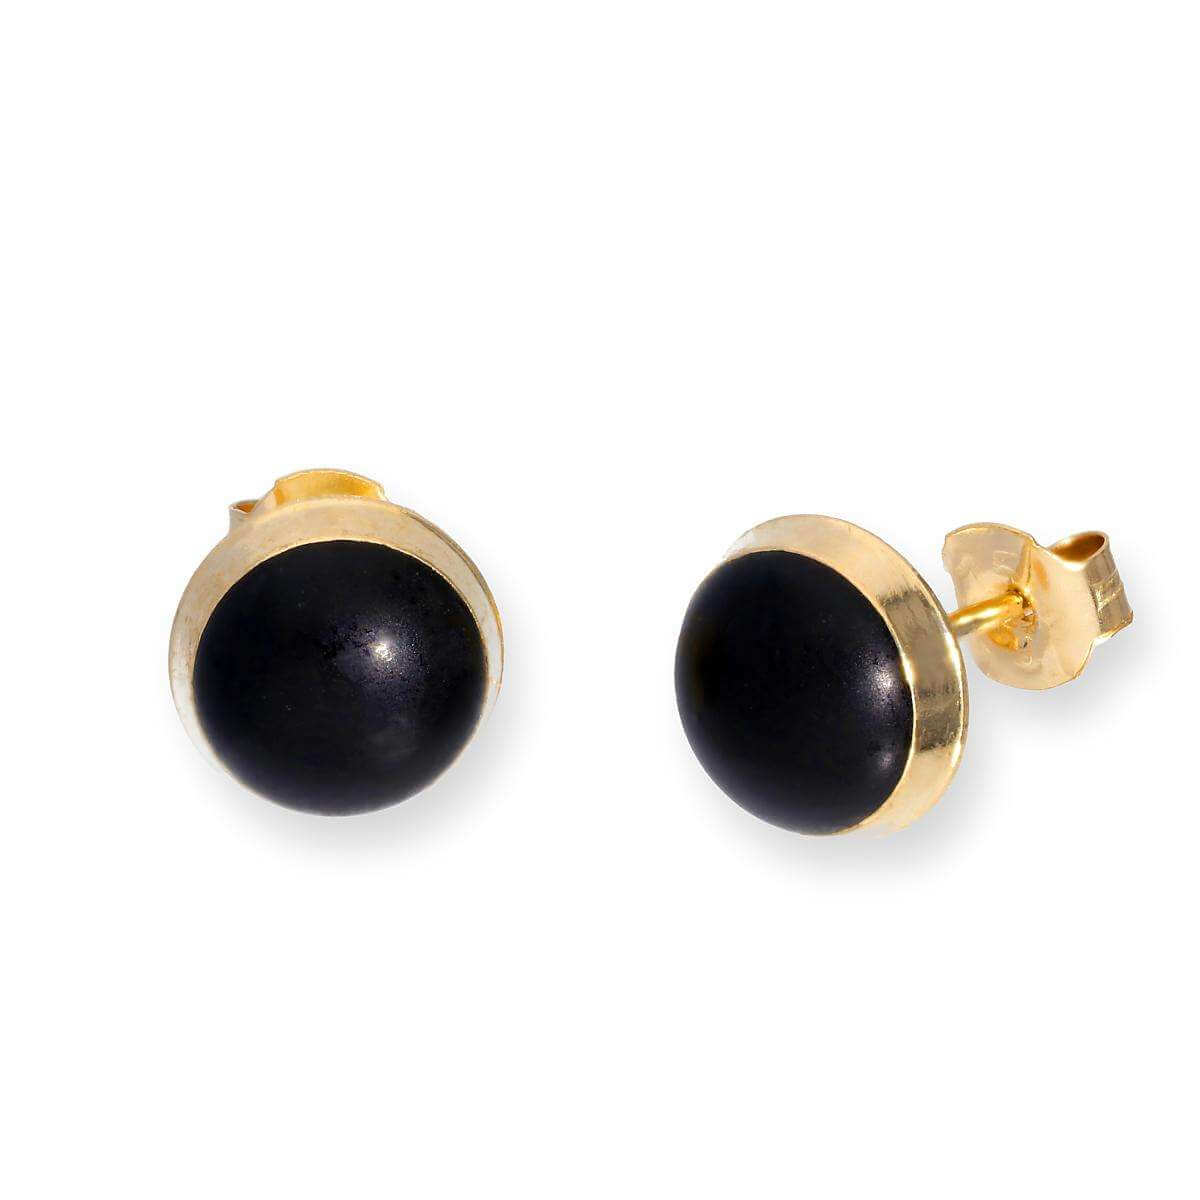 9ct Gold & Black Glitter Enamel Round Stud Earrings